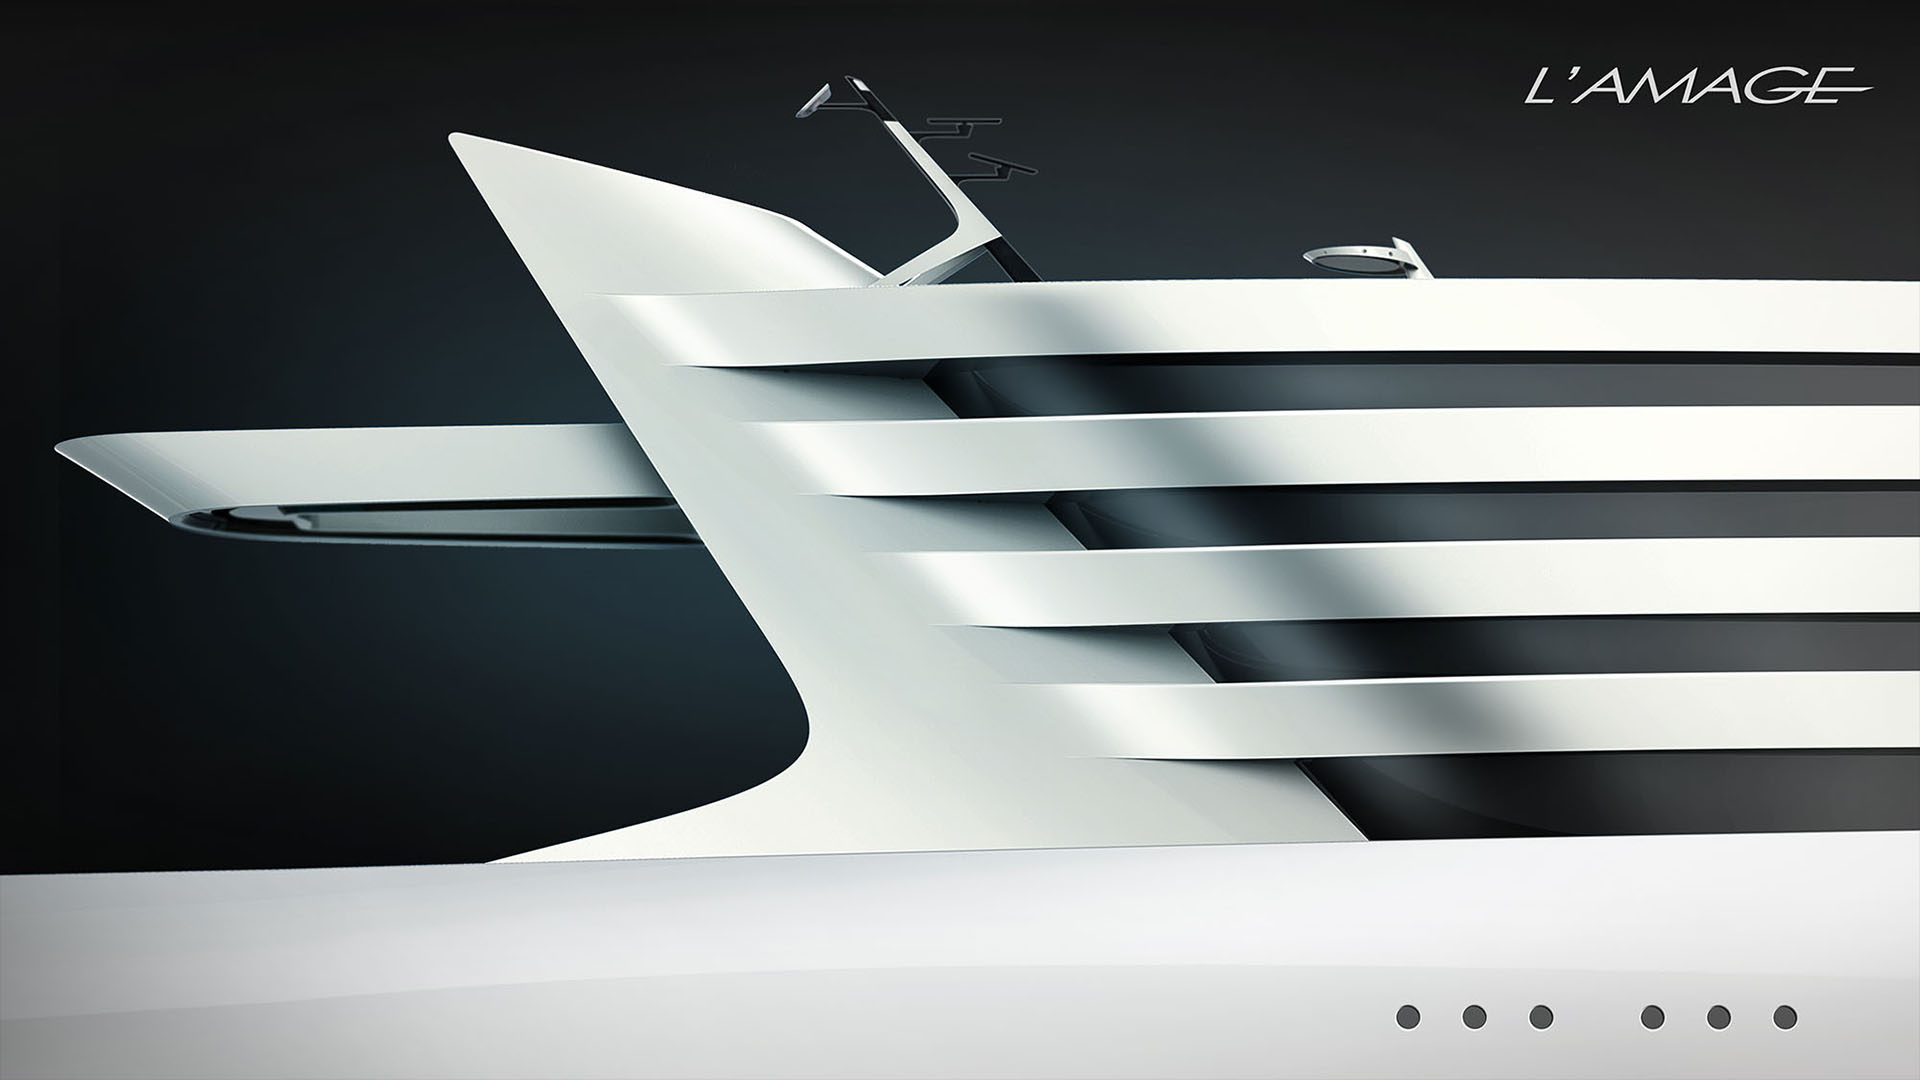 Superyacht L'Amage mehayacht design by visionary designer HBekradi